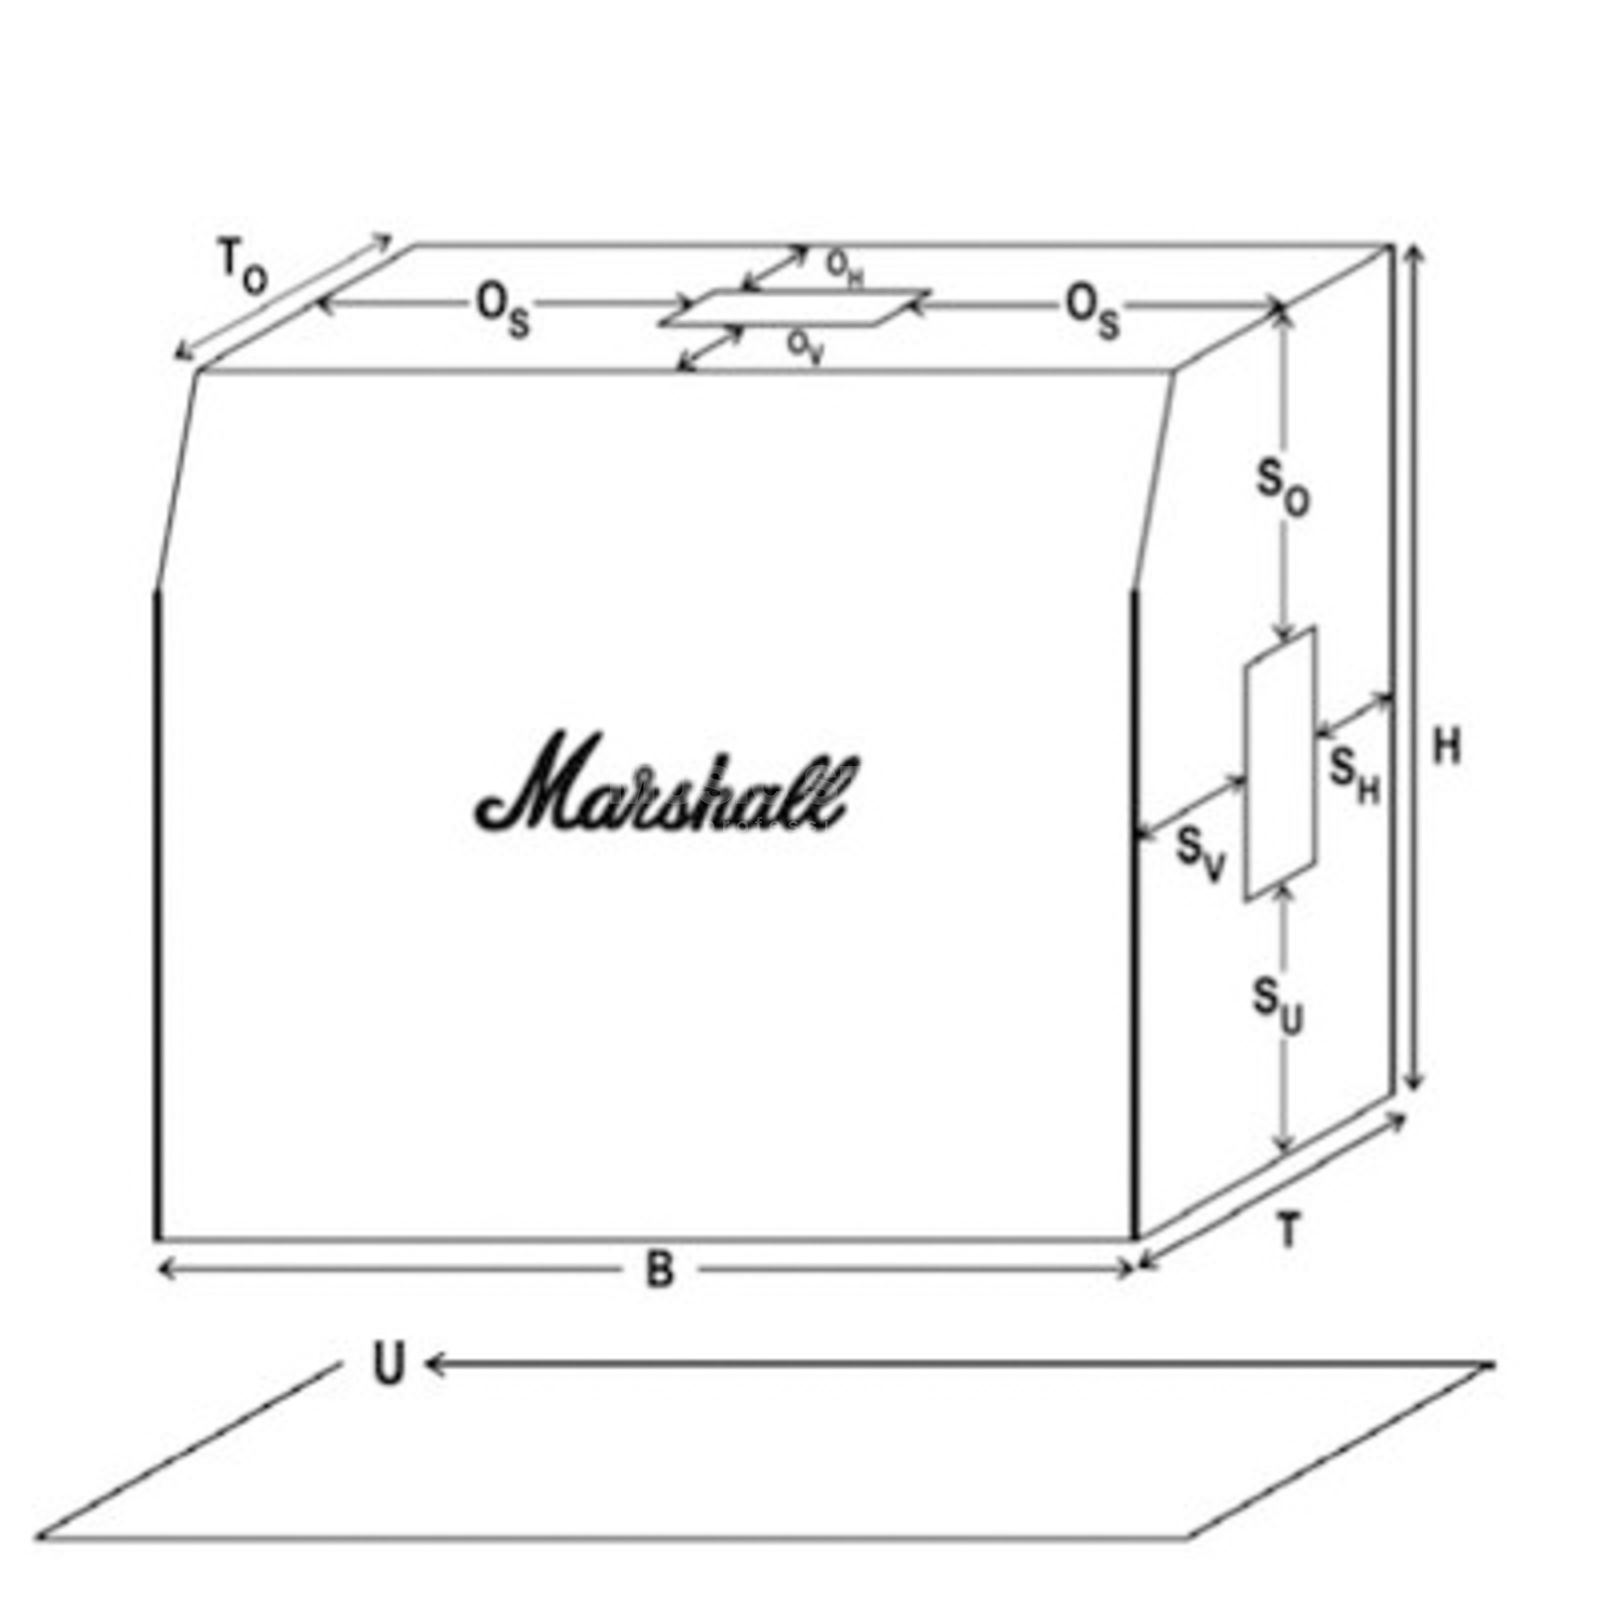 Marshall Cover f. 2061CX MRCOVR00052 Product Image